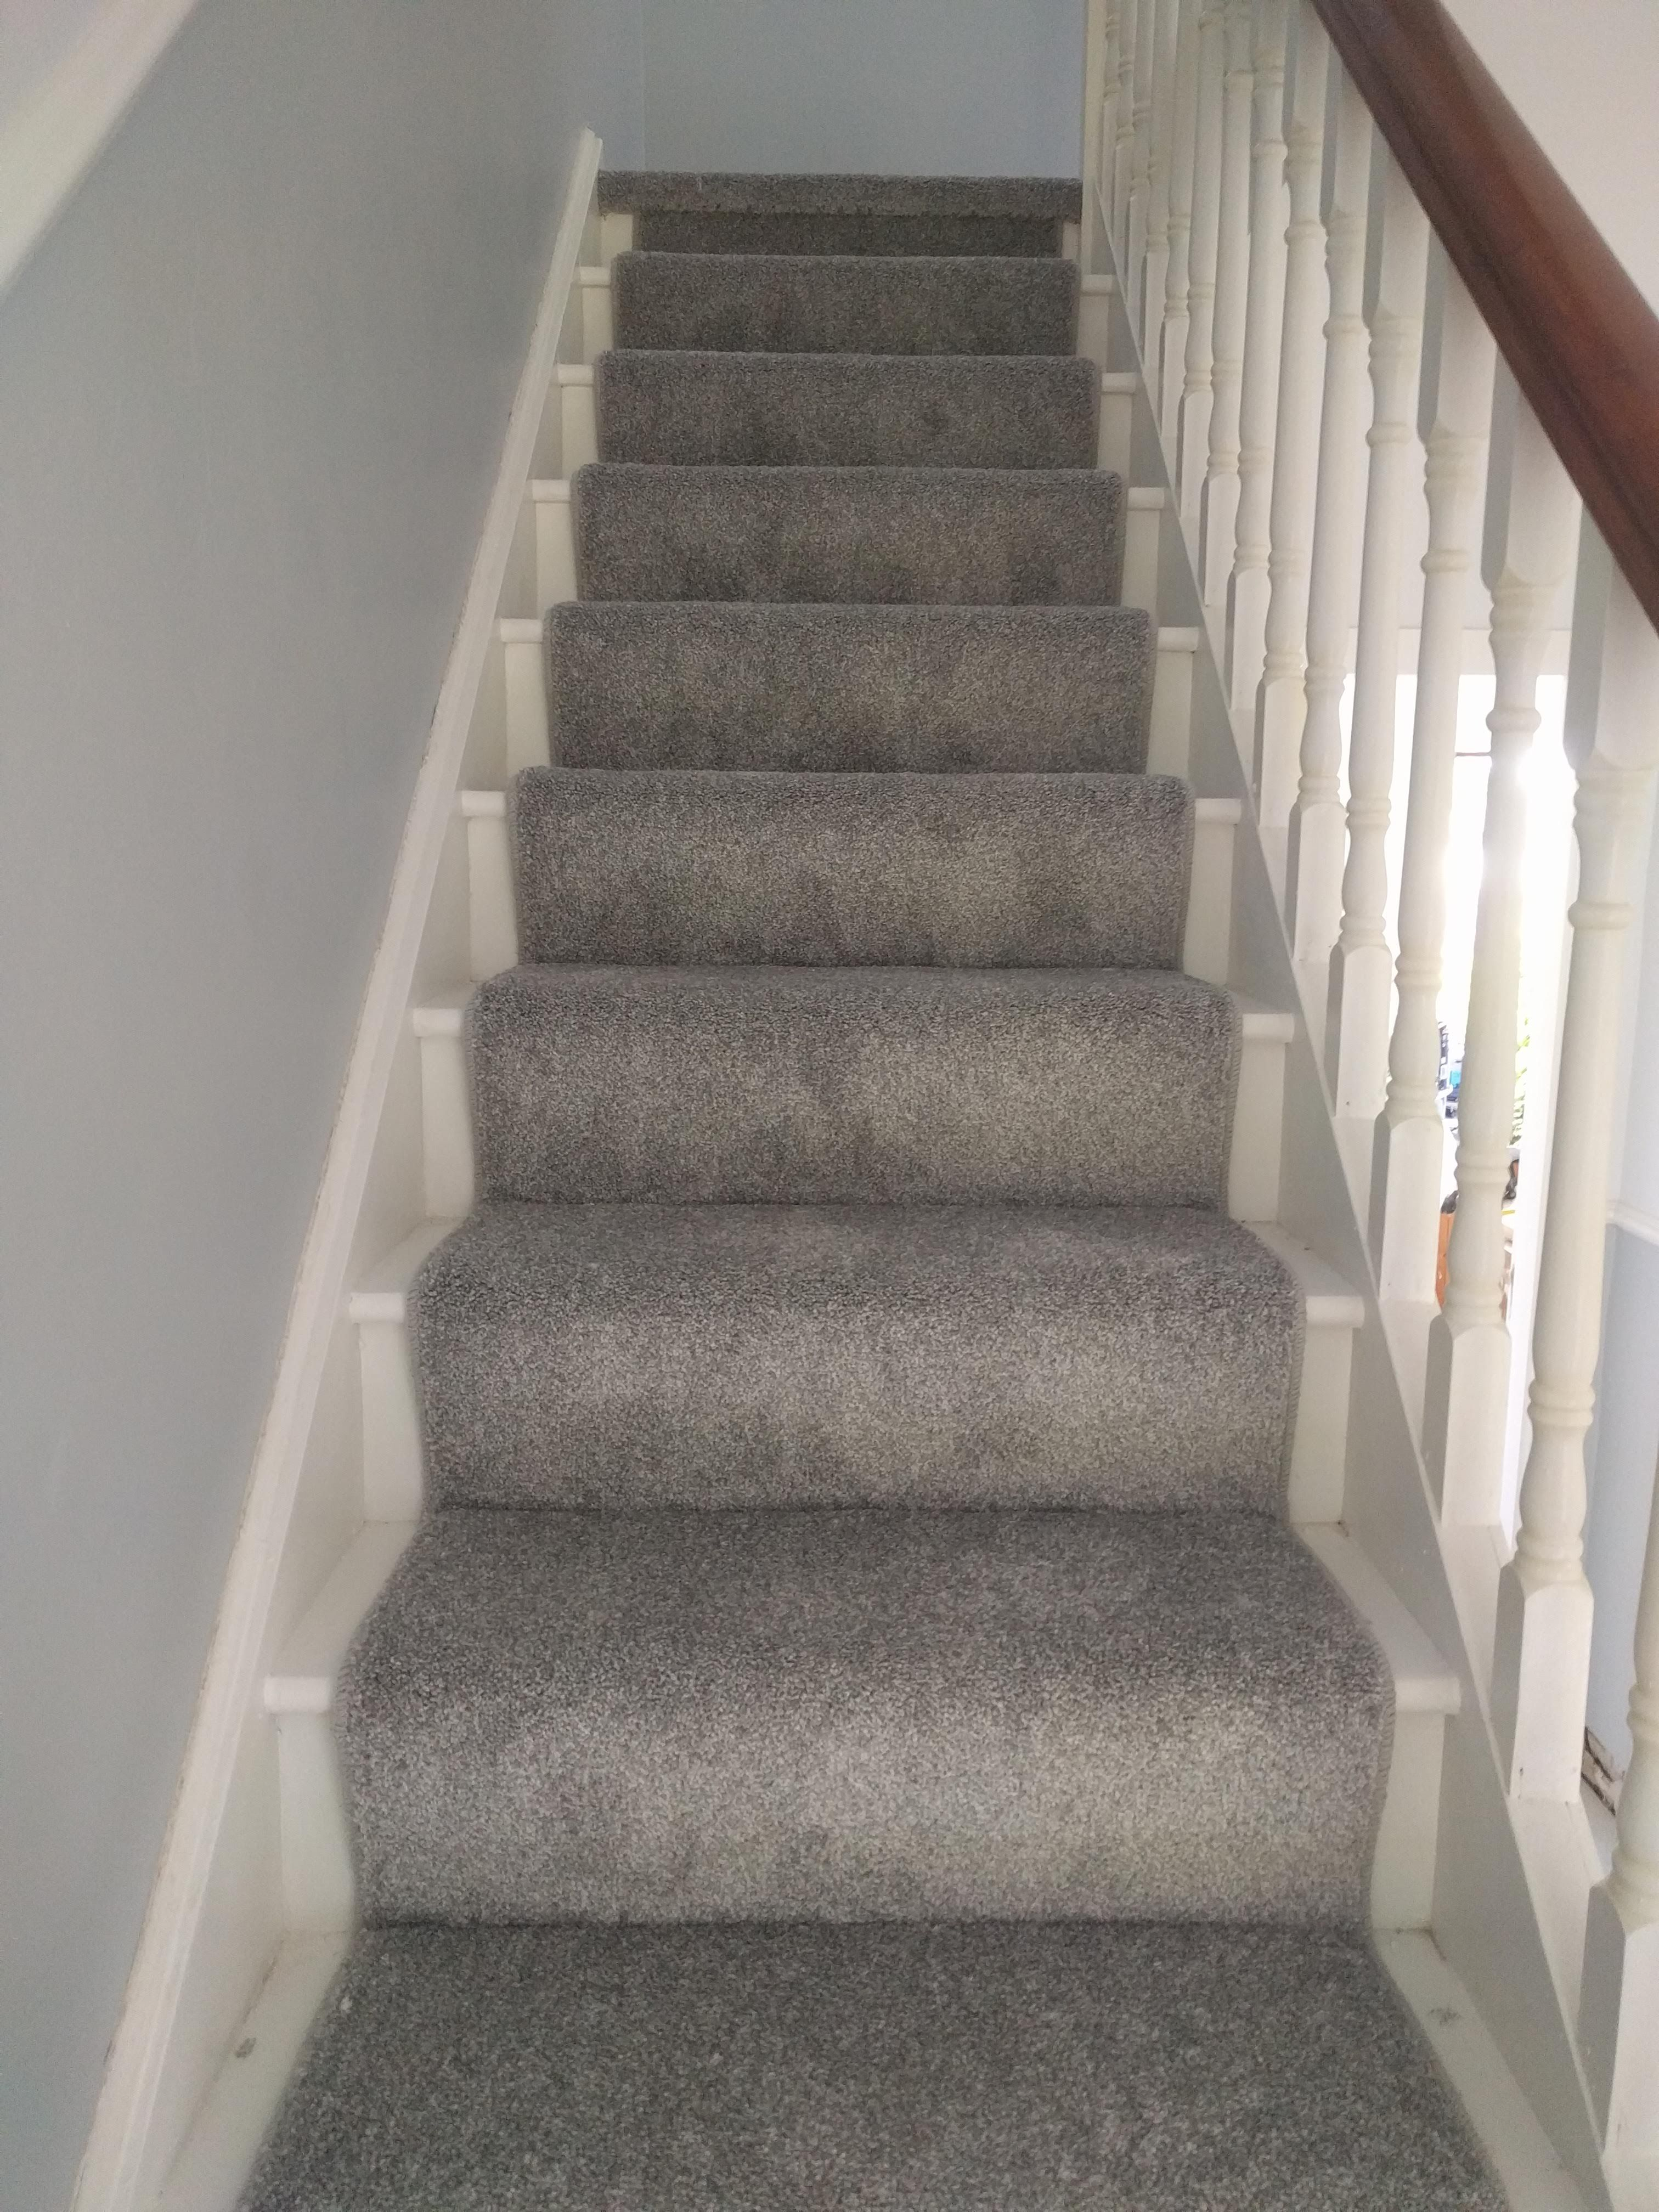 Stairs And Landing Completed With Carpet Stairs Runner In Light | Gray Carpet On Stairs | Contemporary | Geometric | Design | Grey Pattern | Farmhouse